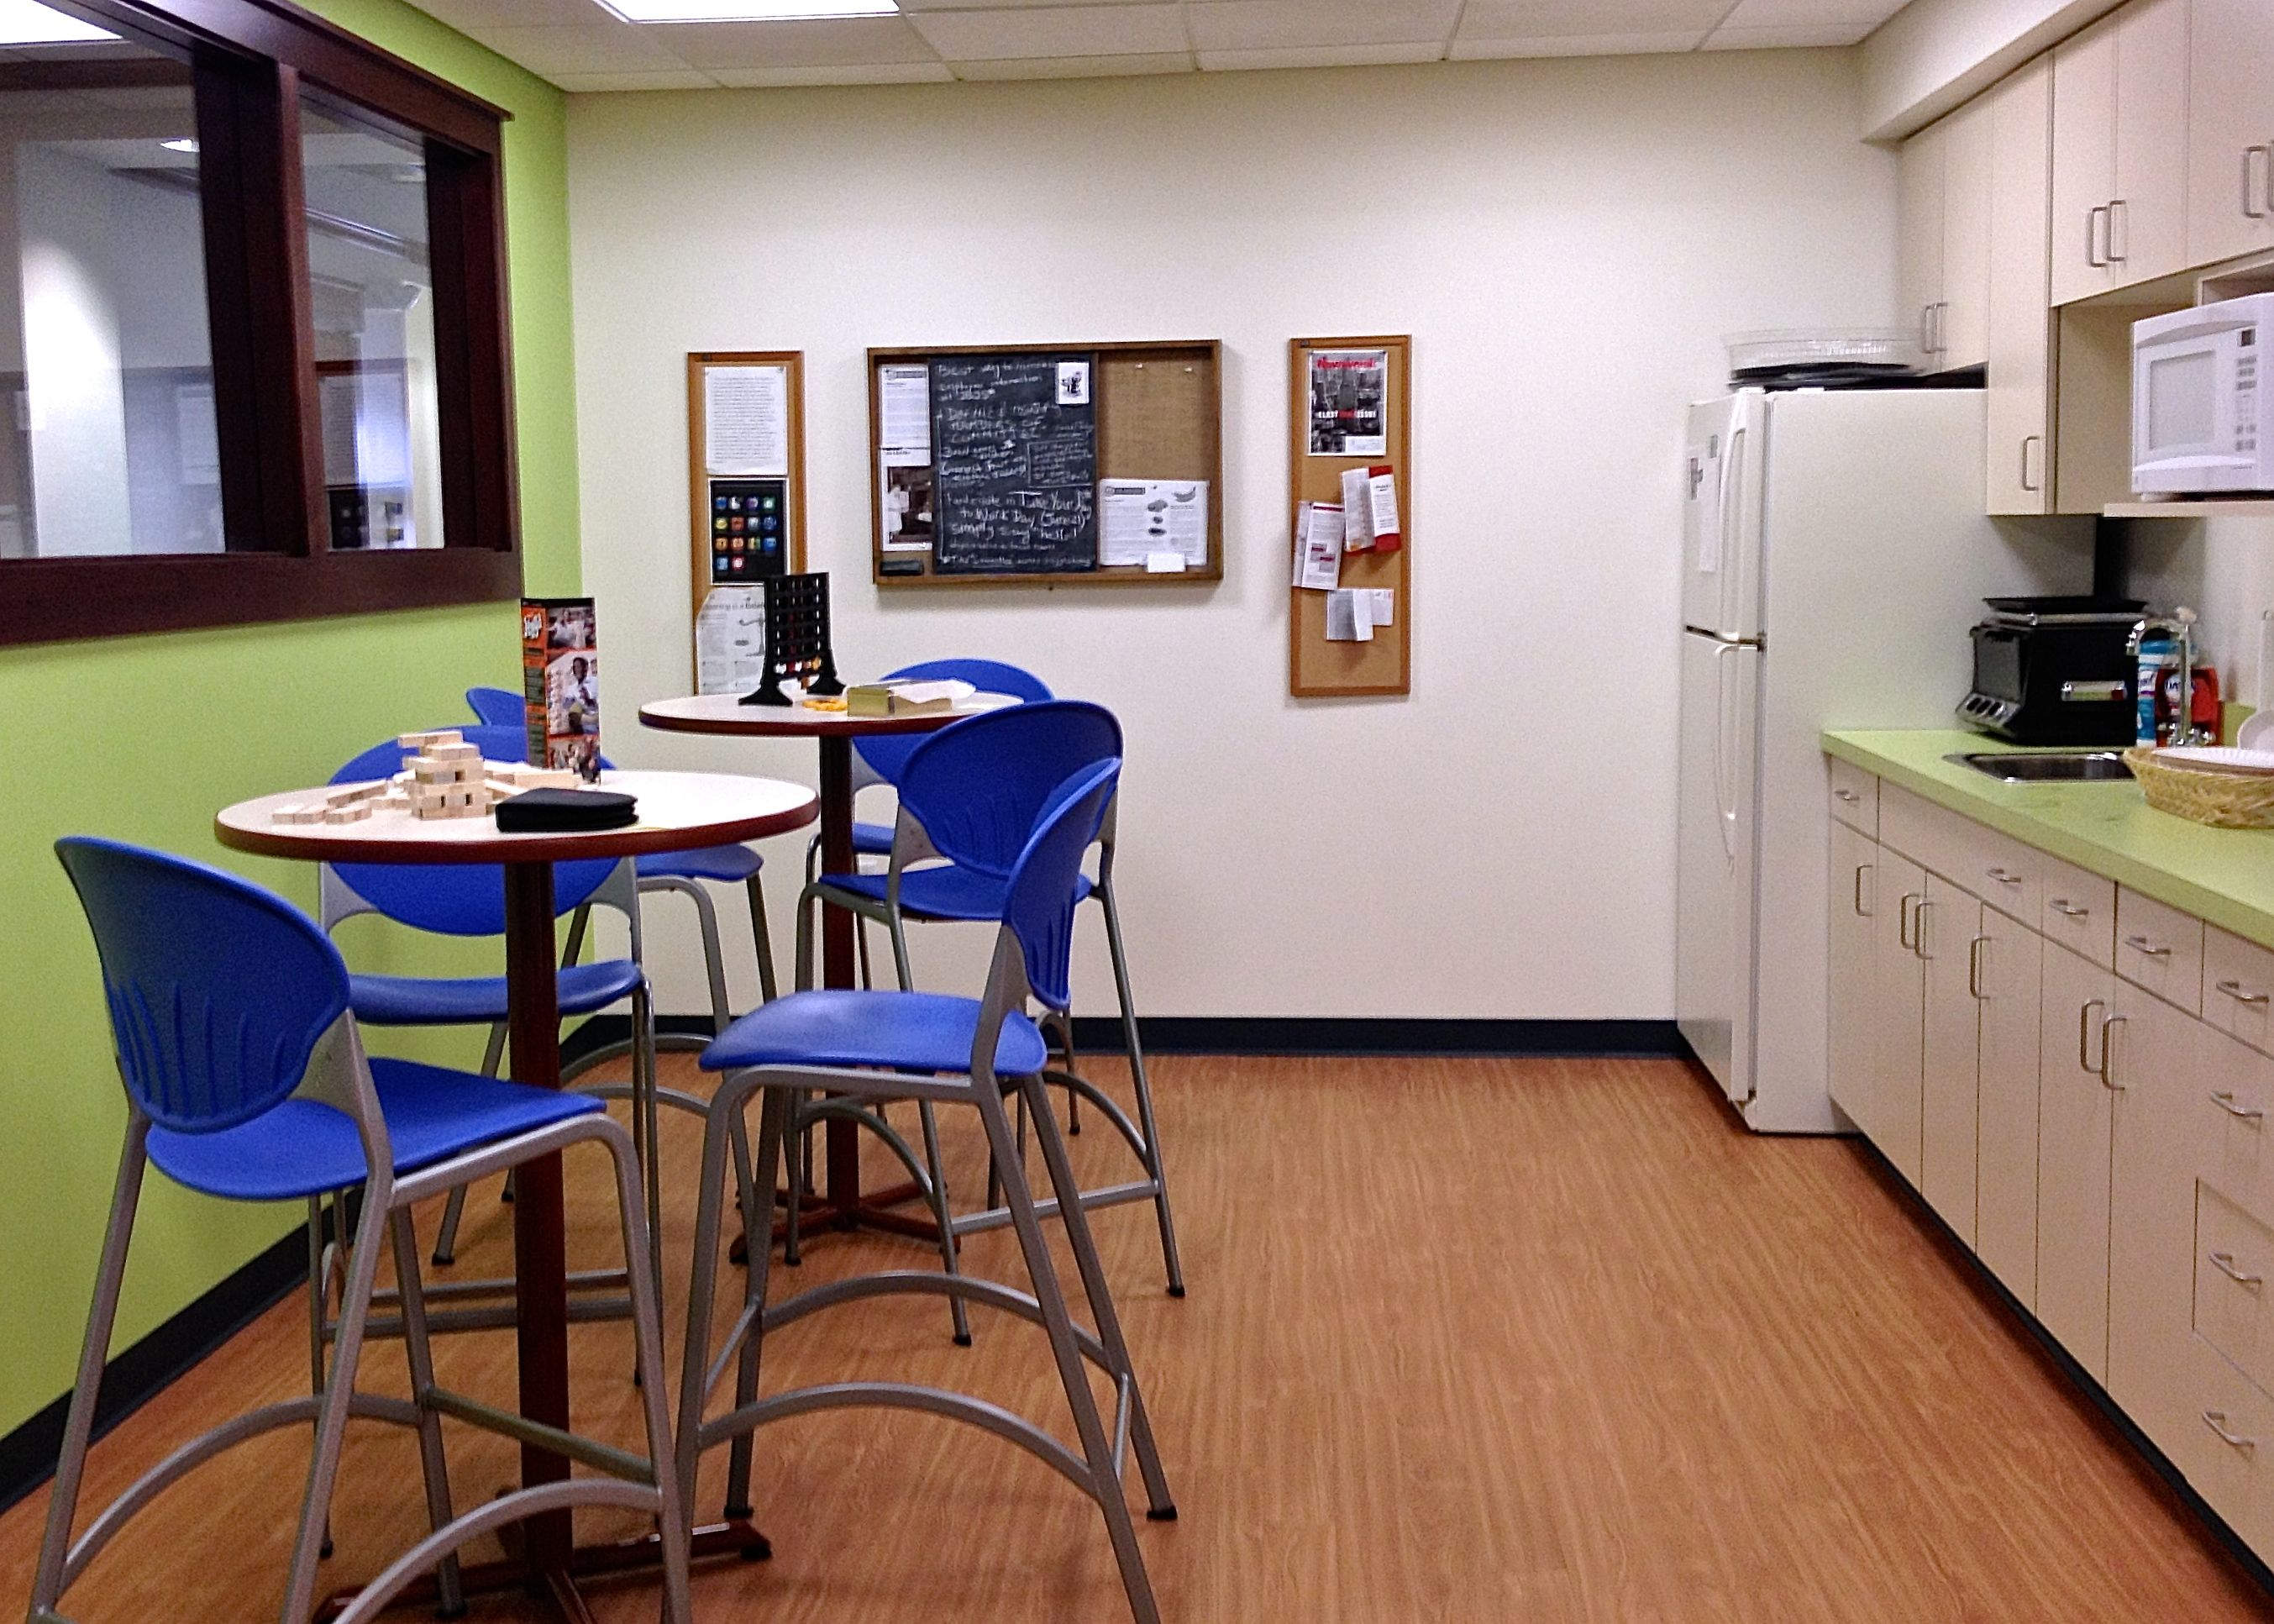 Small Employee Break Room Design High Top Table To Save Space